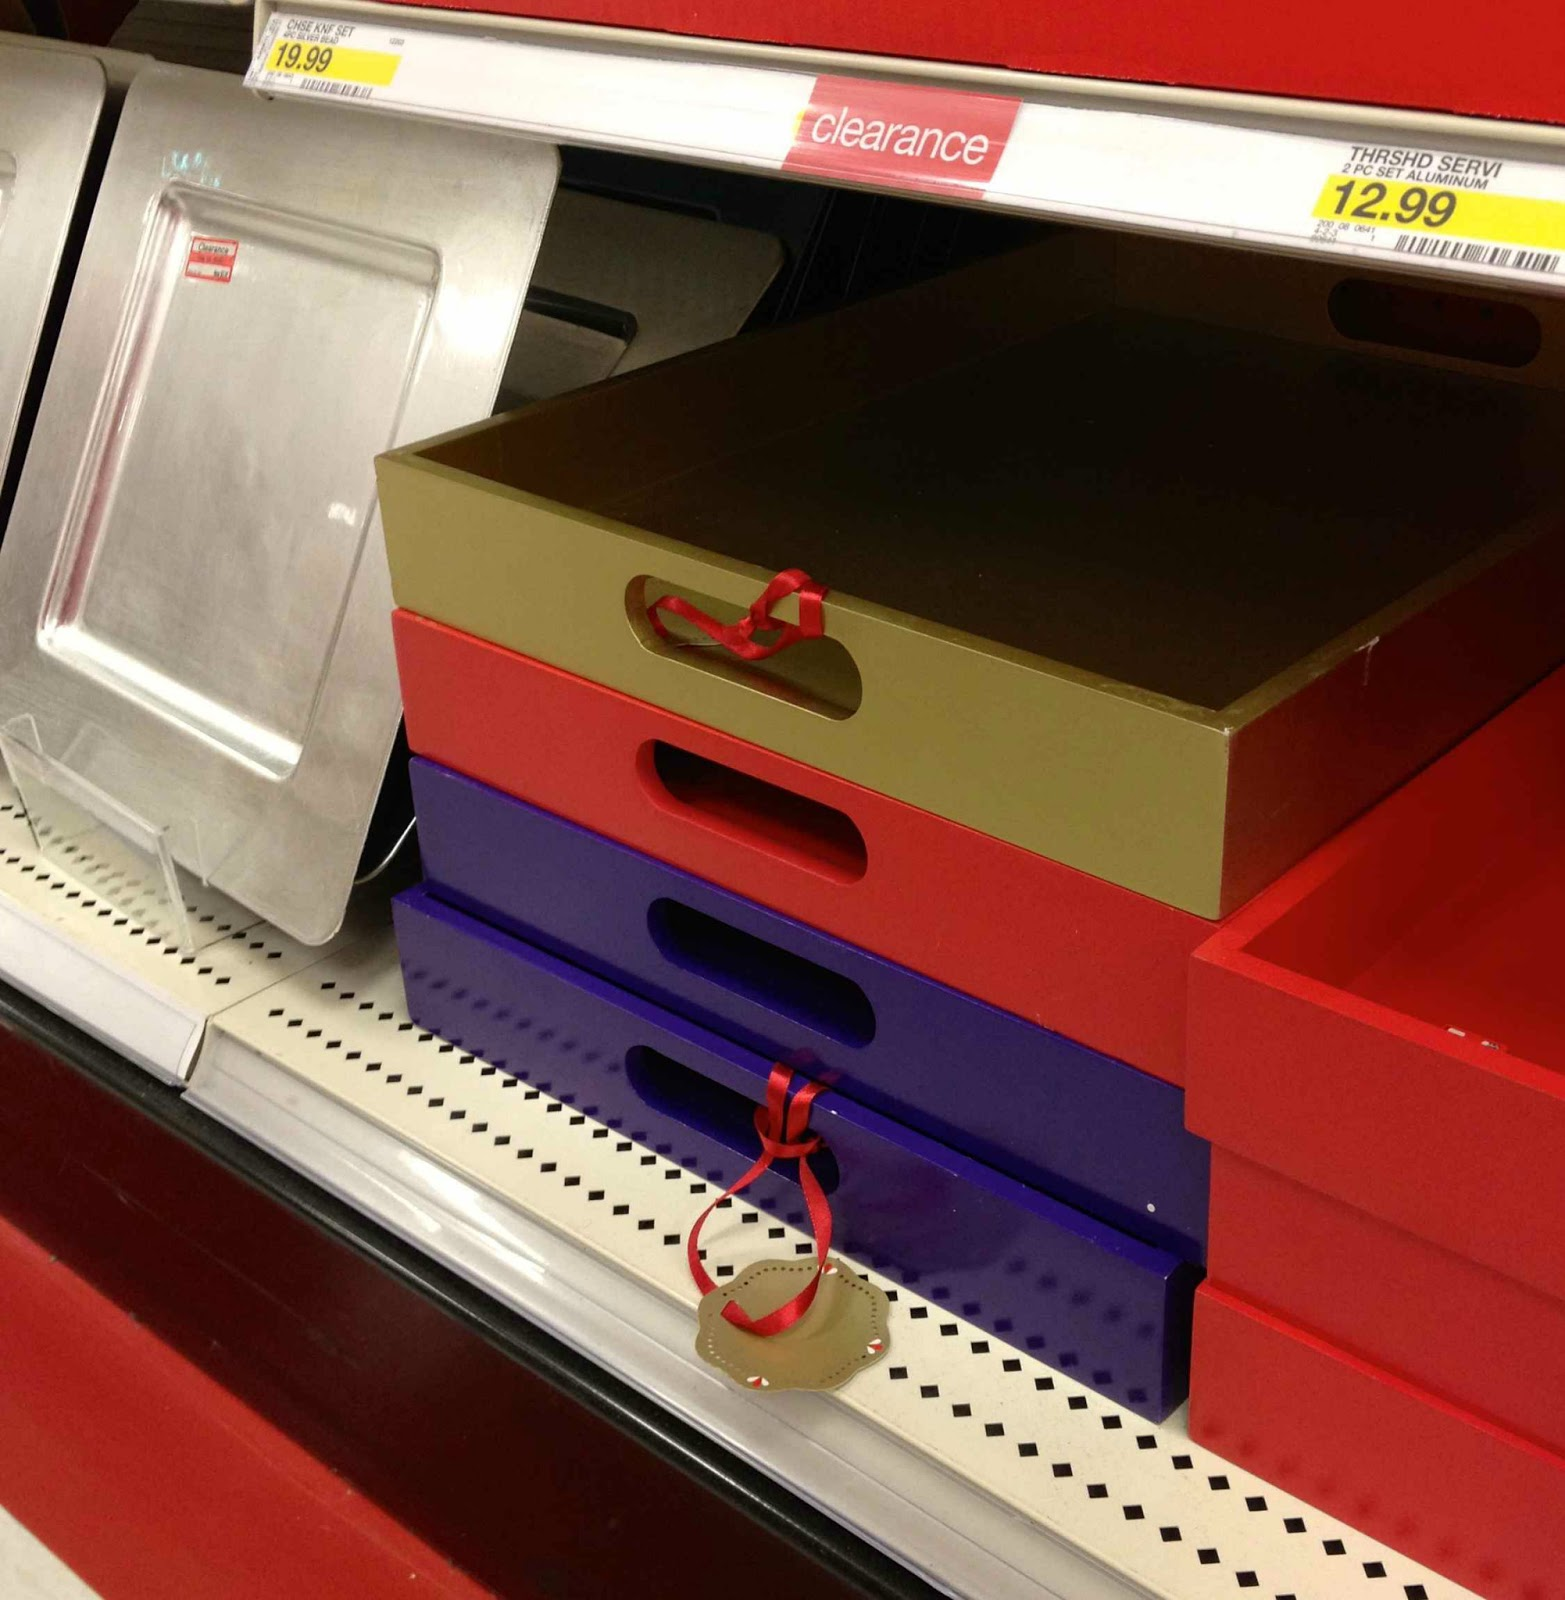 Driven By Décor: Target Holiday Home Décor Clearance